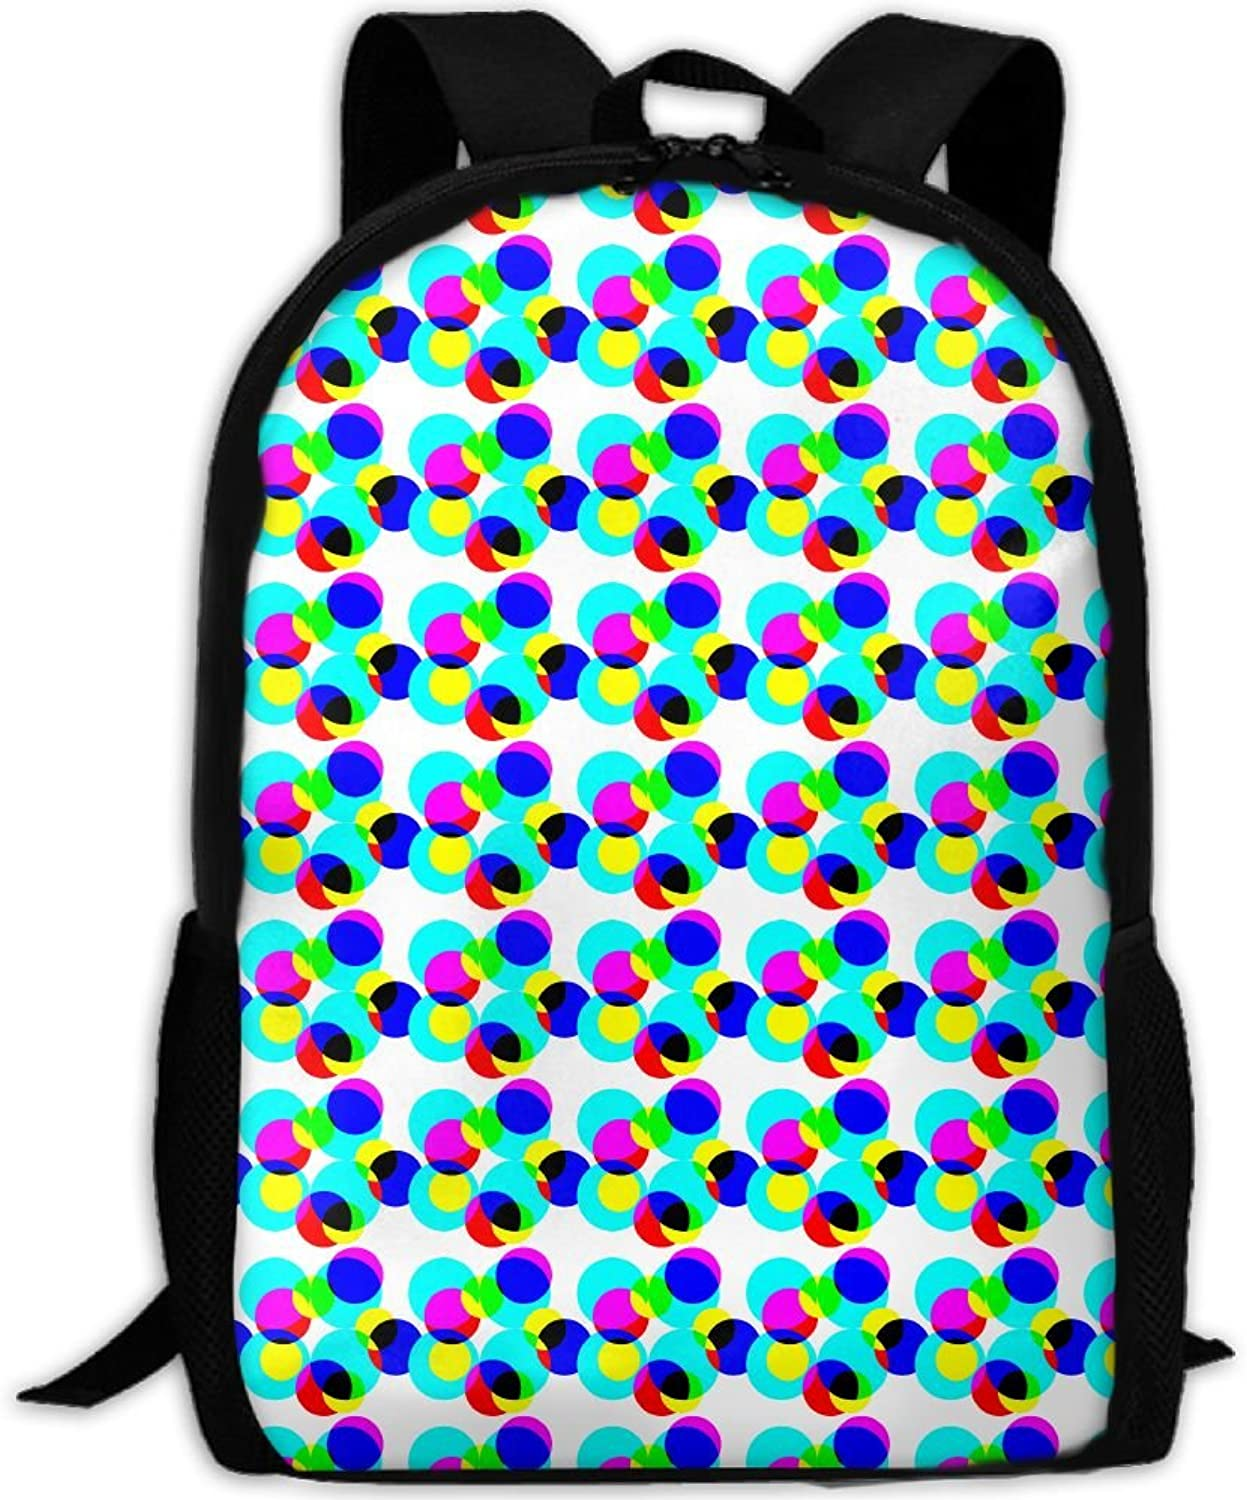 475341bad68a Backpack Travel Hiking School Bags Trippy Acid Circles Daypack ...